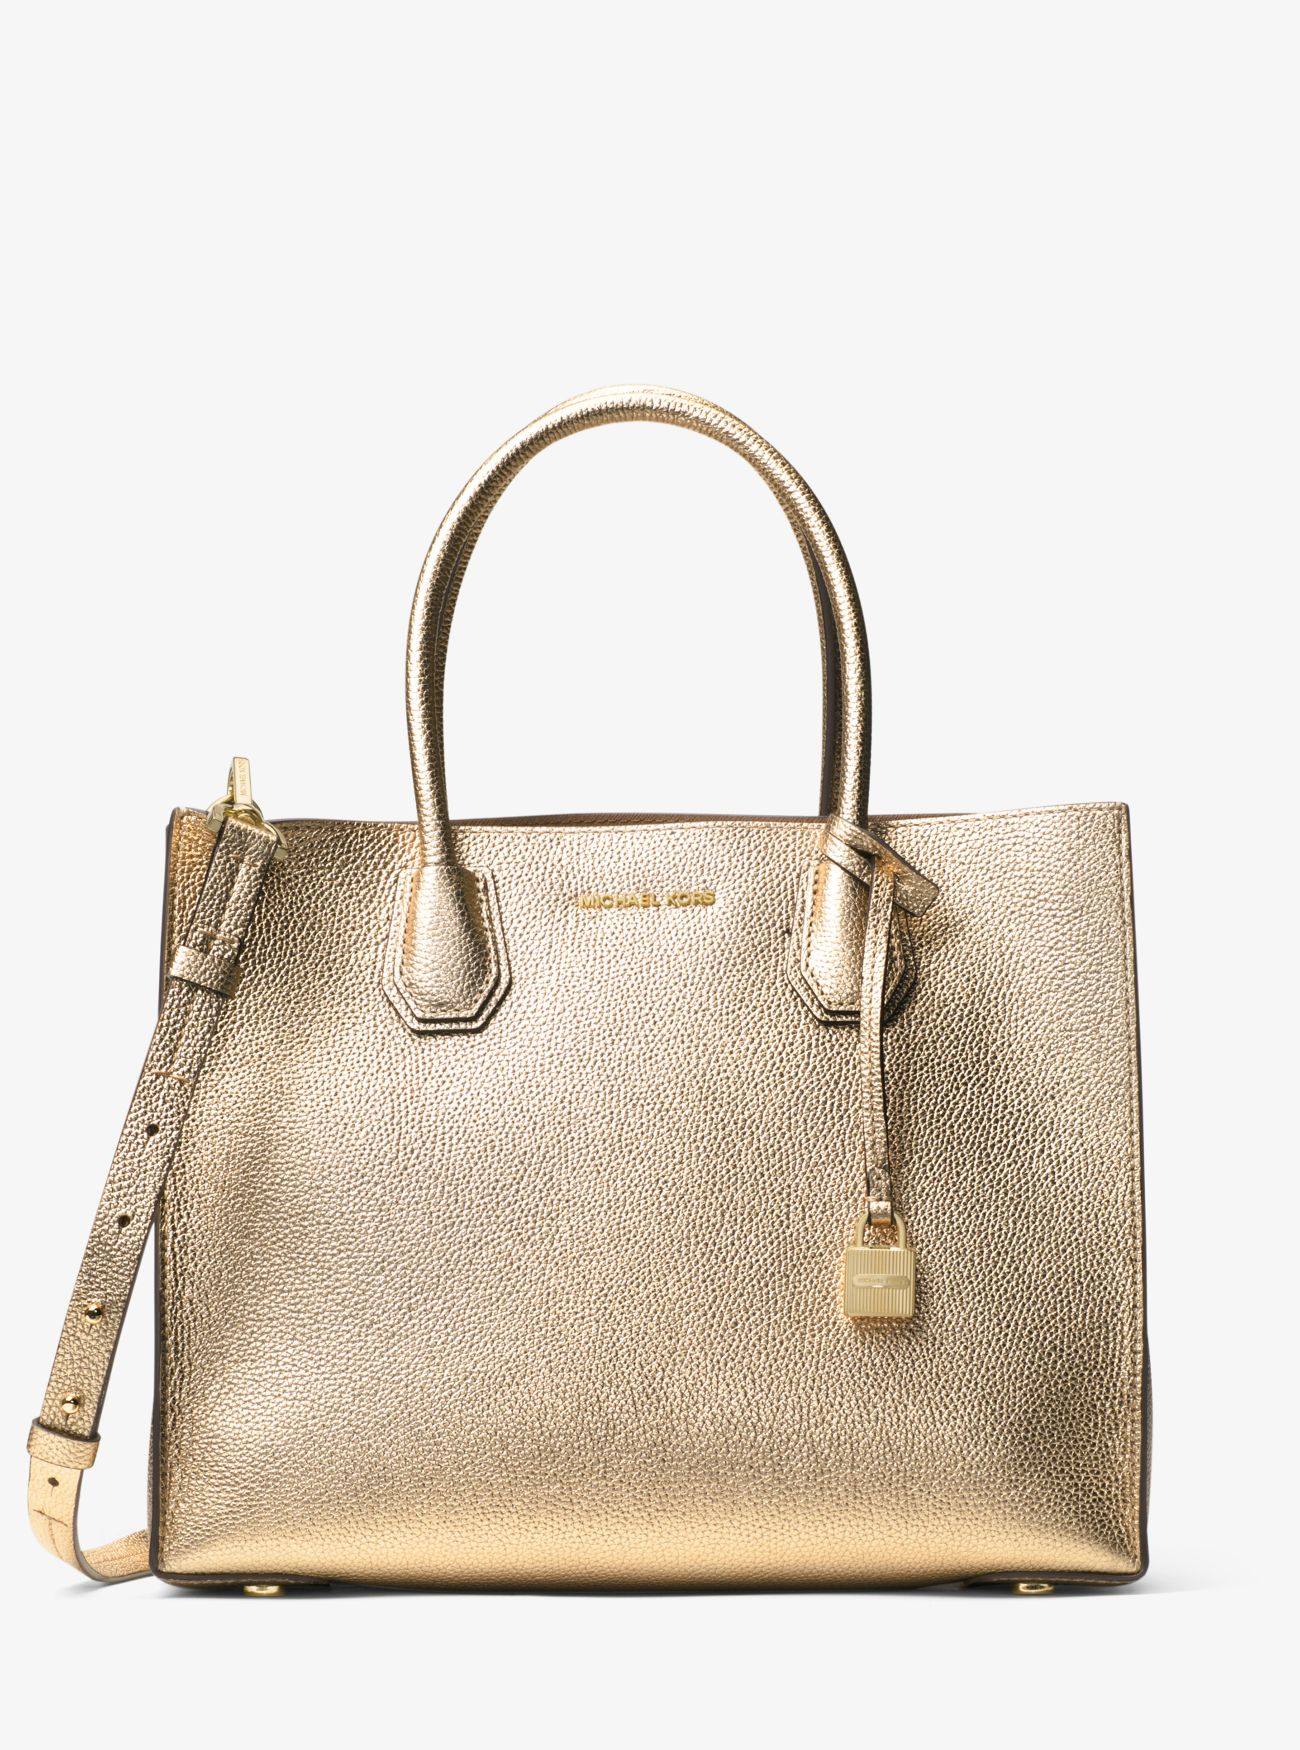 Silver leather tote bag uk - Mercer Large Metallic Leather Tote